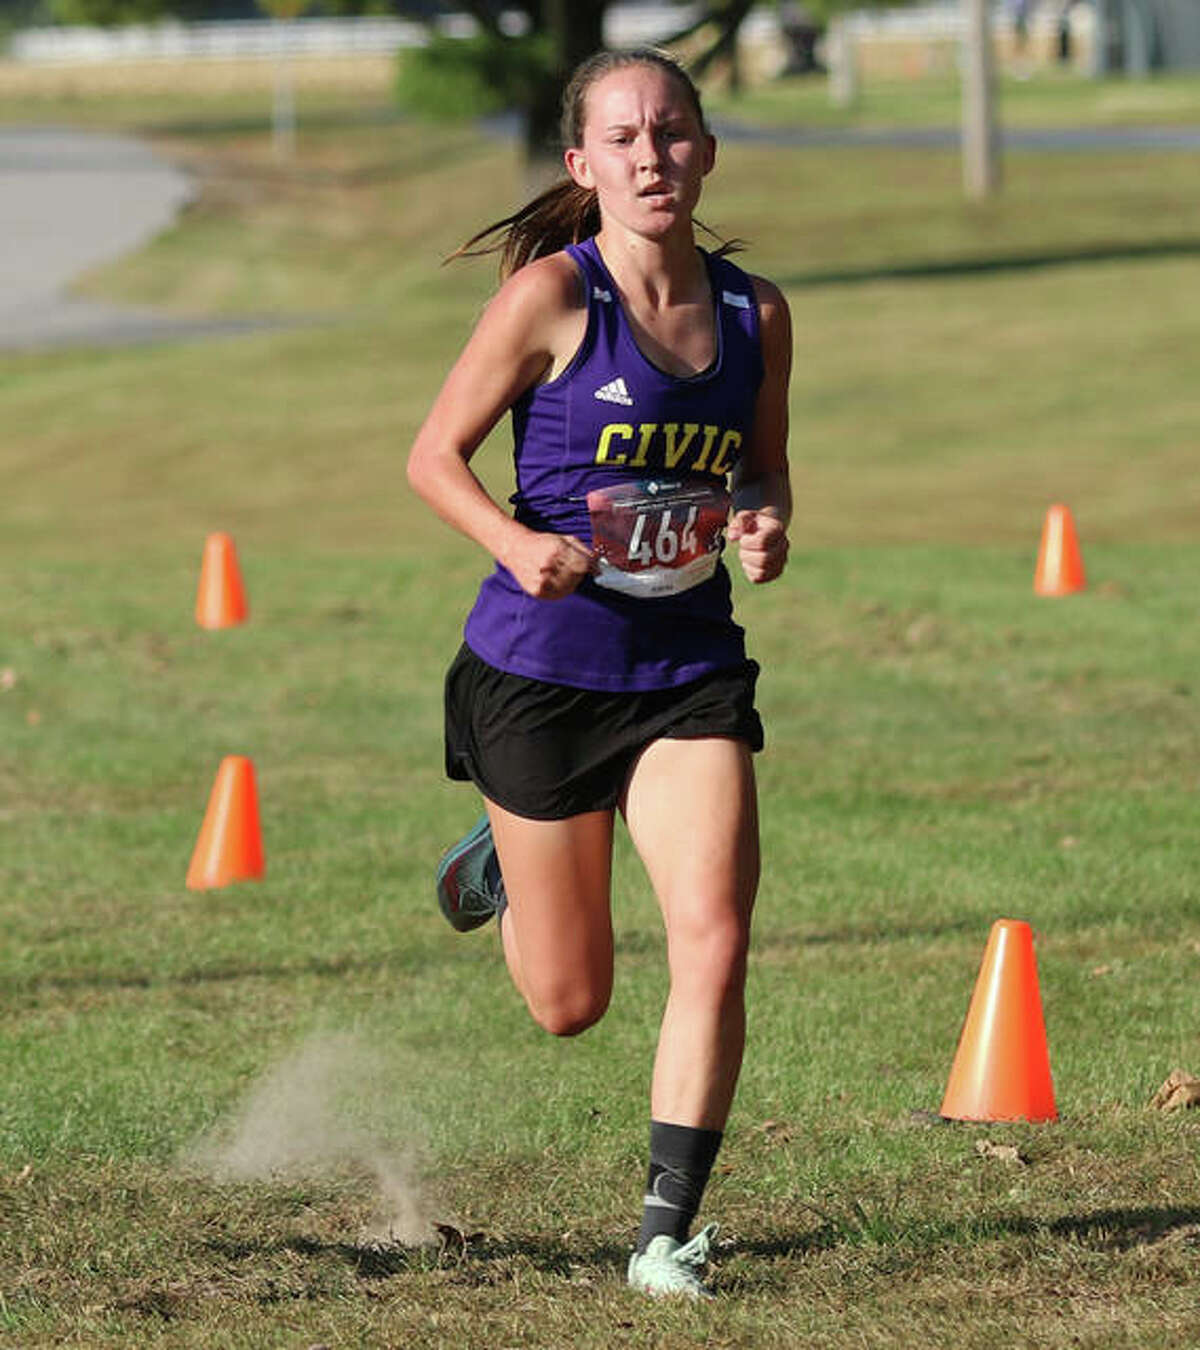 CM's Hannah Meiser, shown during her win at the Madison County Meet on Oct. 6 at Belk Park in Wood River, earned state qualifier status Saturday with a fourth-place finish at the Class 2A sectional girls cross country meet in Olney.